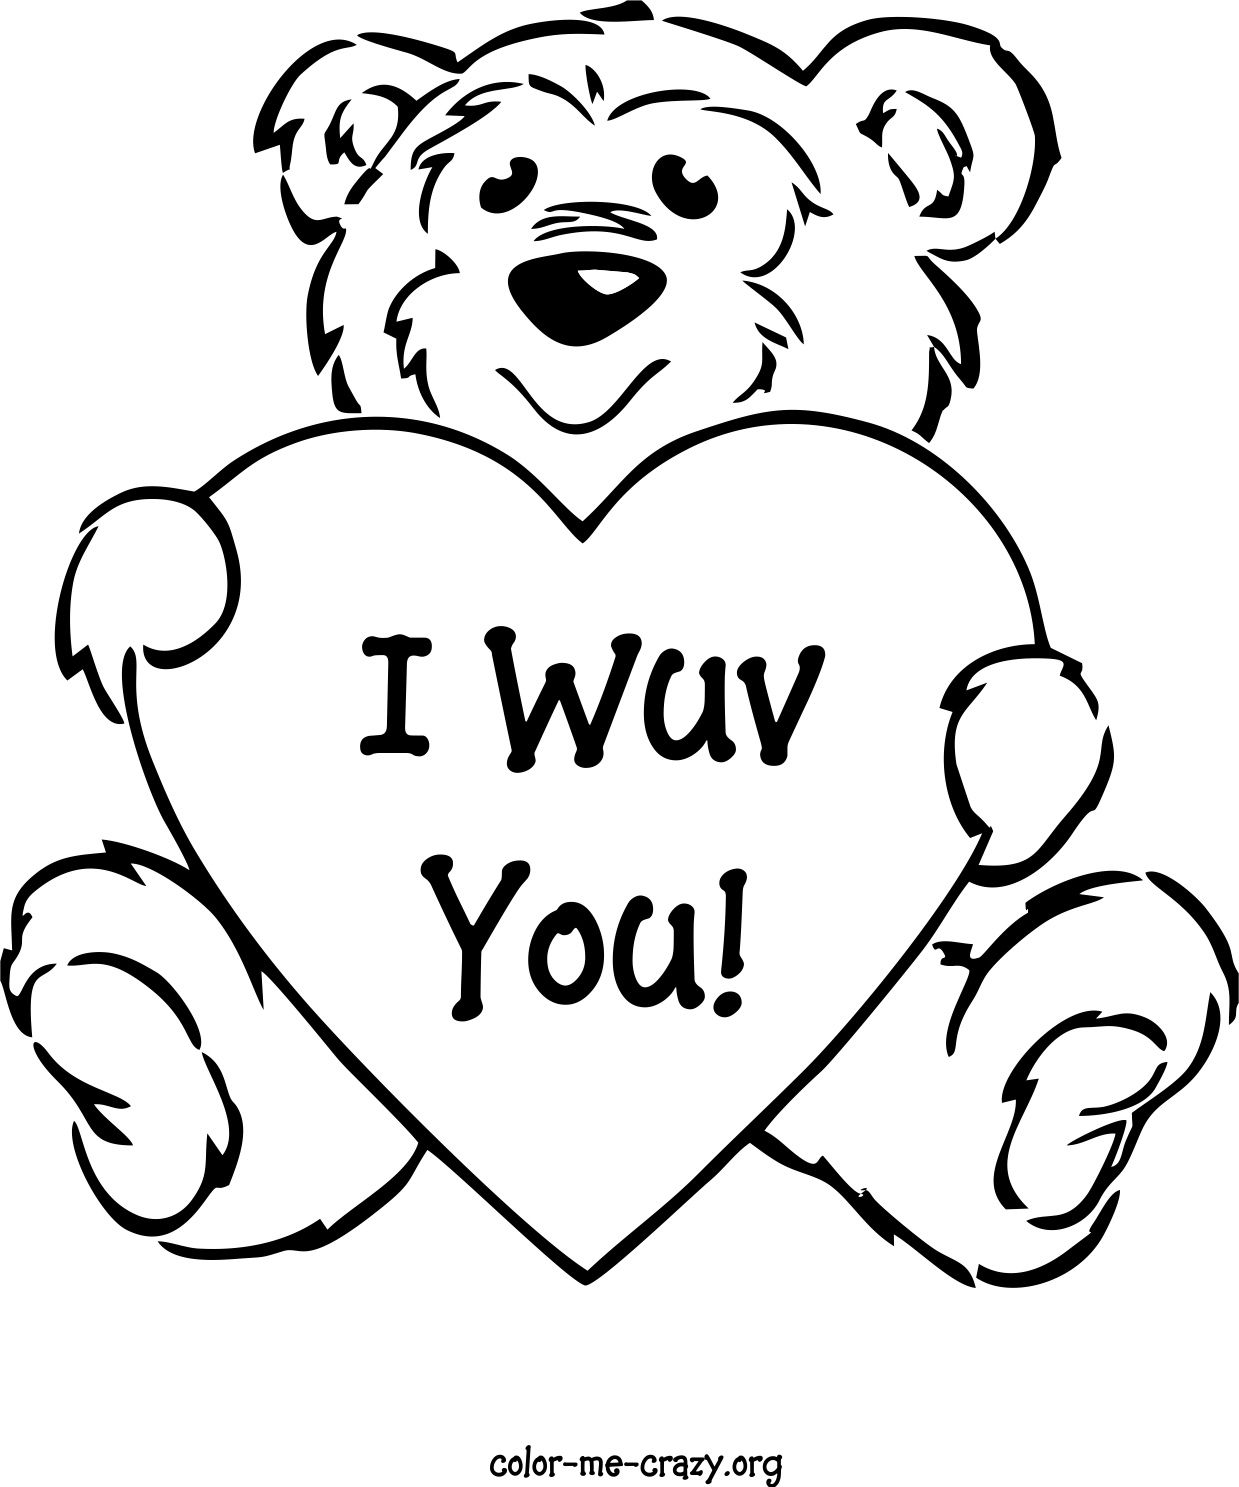 valentines colouring pages valentine39s coloring pages crazy little projects valentines pages colouring